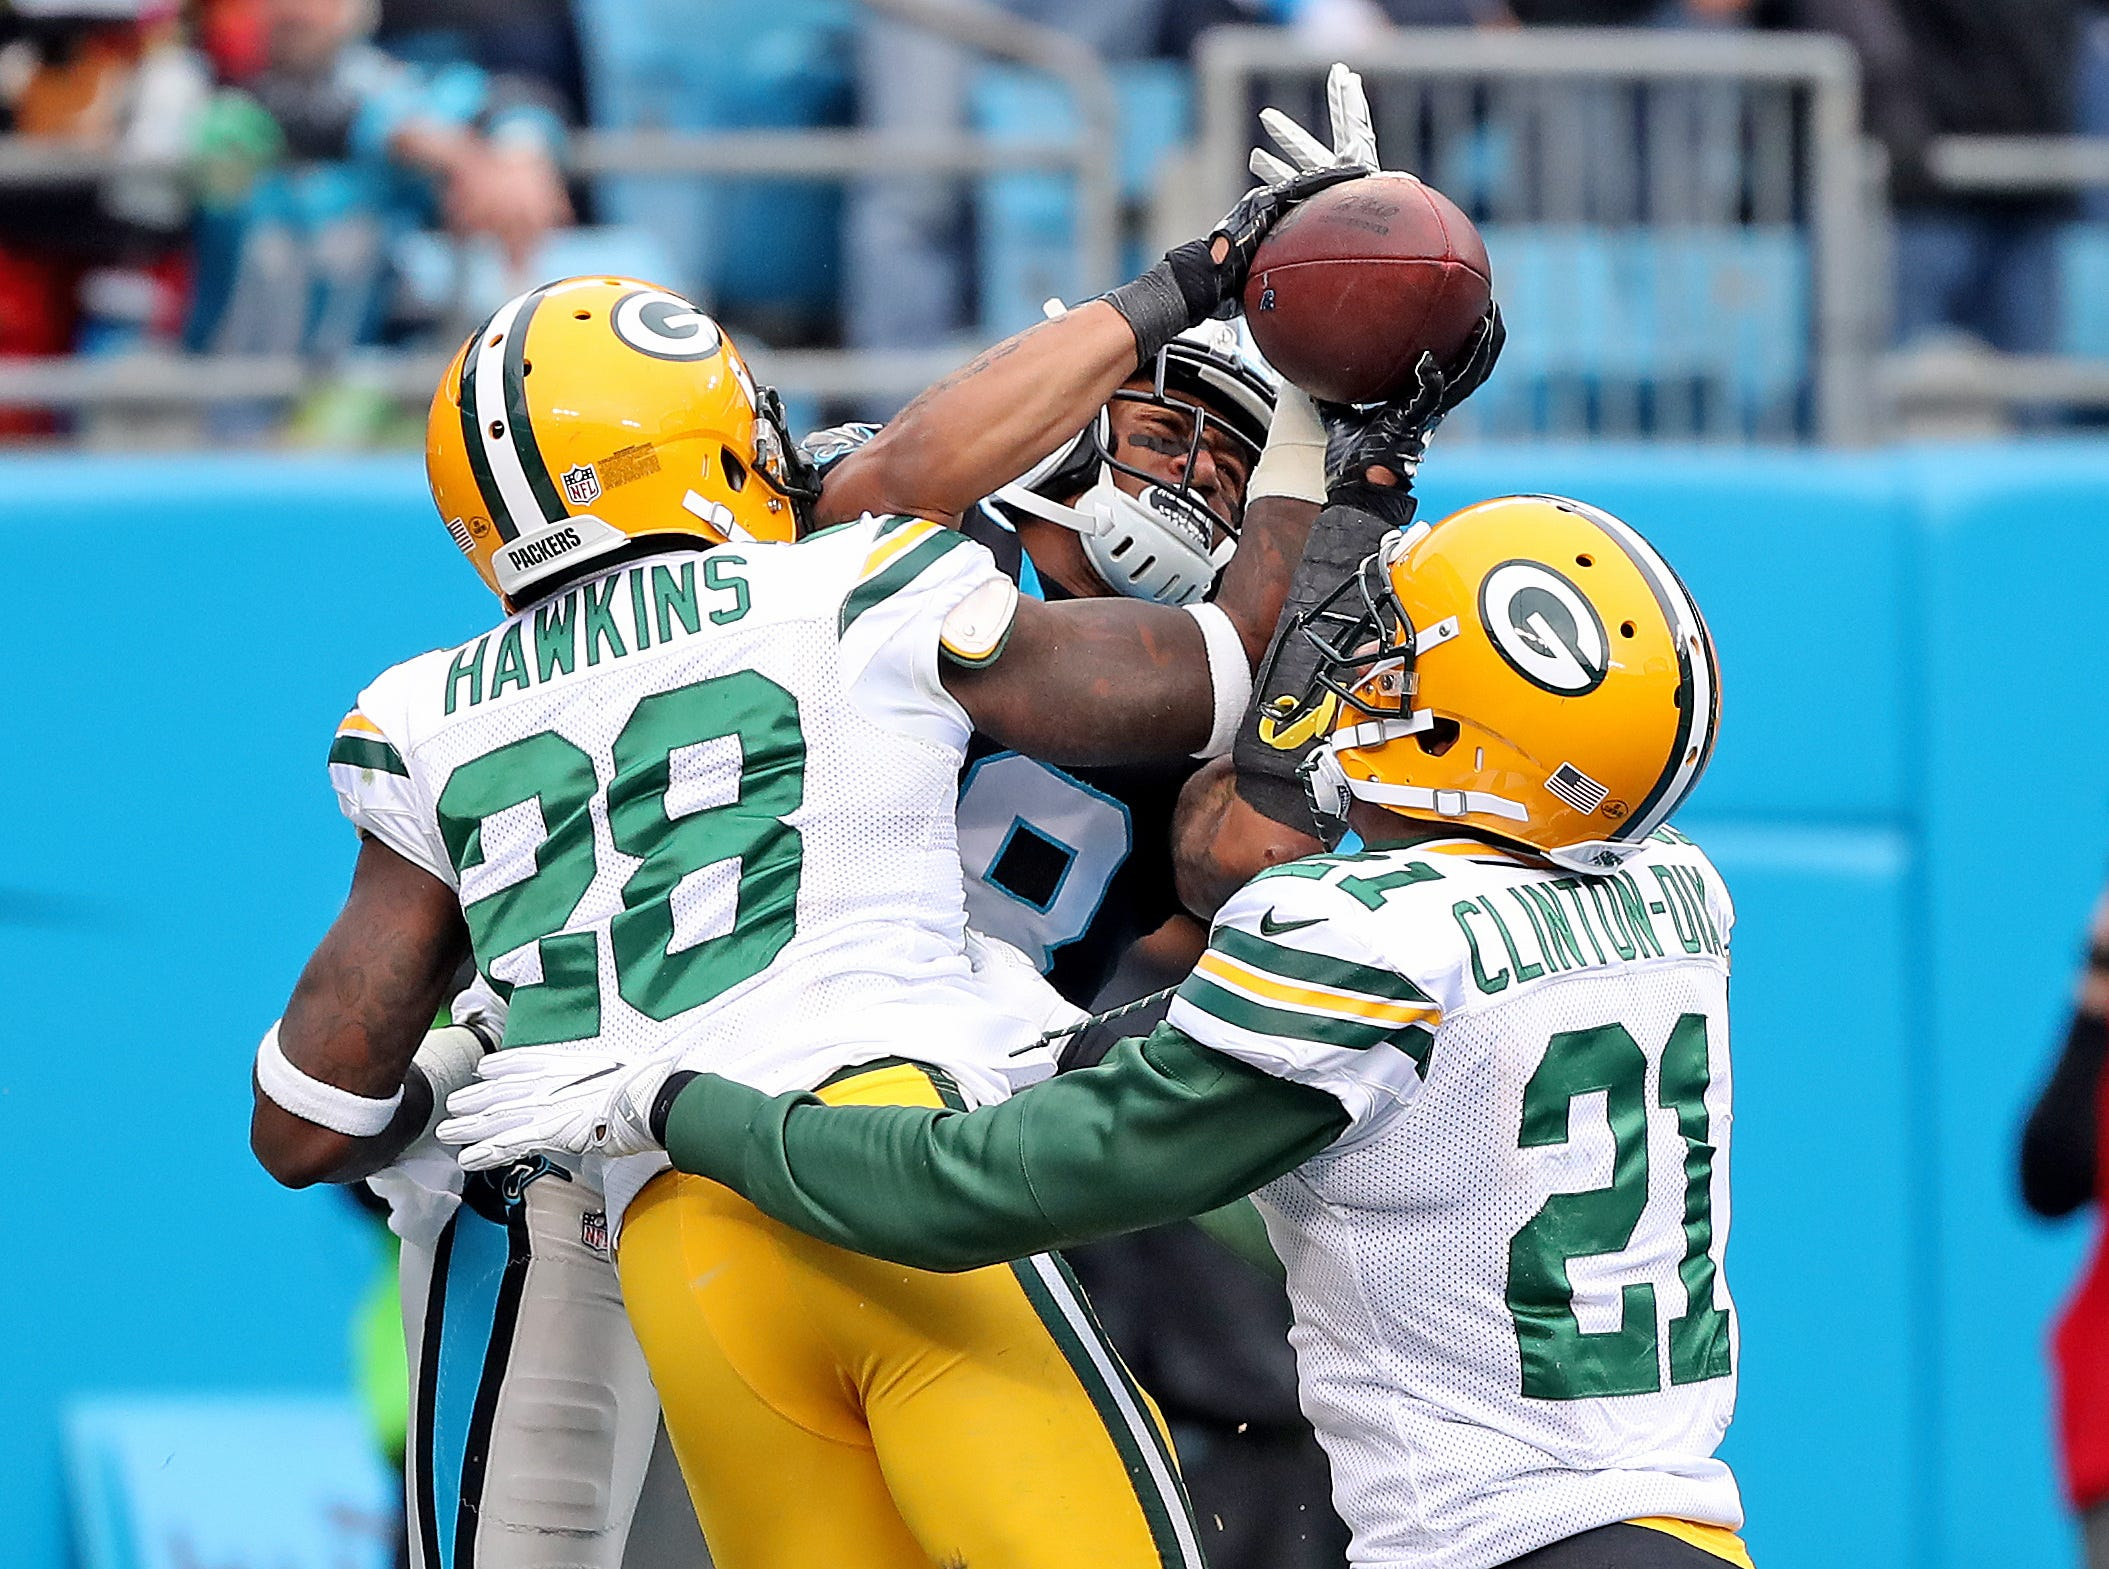 Green Bay Packers cornerback Josh Hawkins (28) and free safety Ha Ha Clinton-Dix (21) try to break up a pass  to wide receiver Damiere Byrd (18) against the Carolina Panthers Sunday, December 17, 2017 at Bank of America Stadium in Charlotte, NC. Initially ruled incomplete, the pass was ruled a touchdown on review.